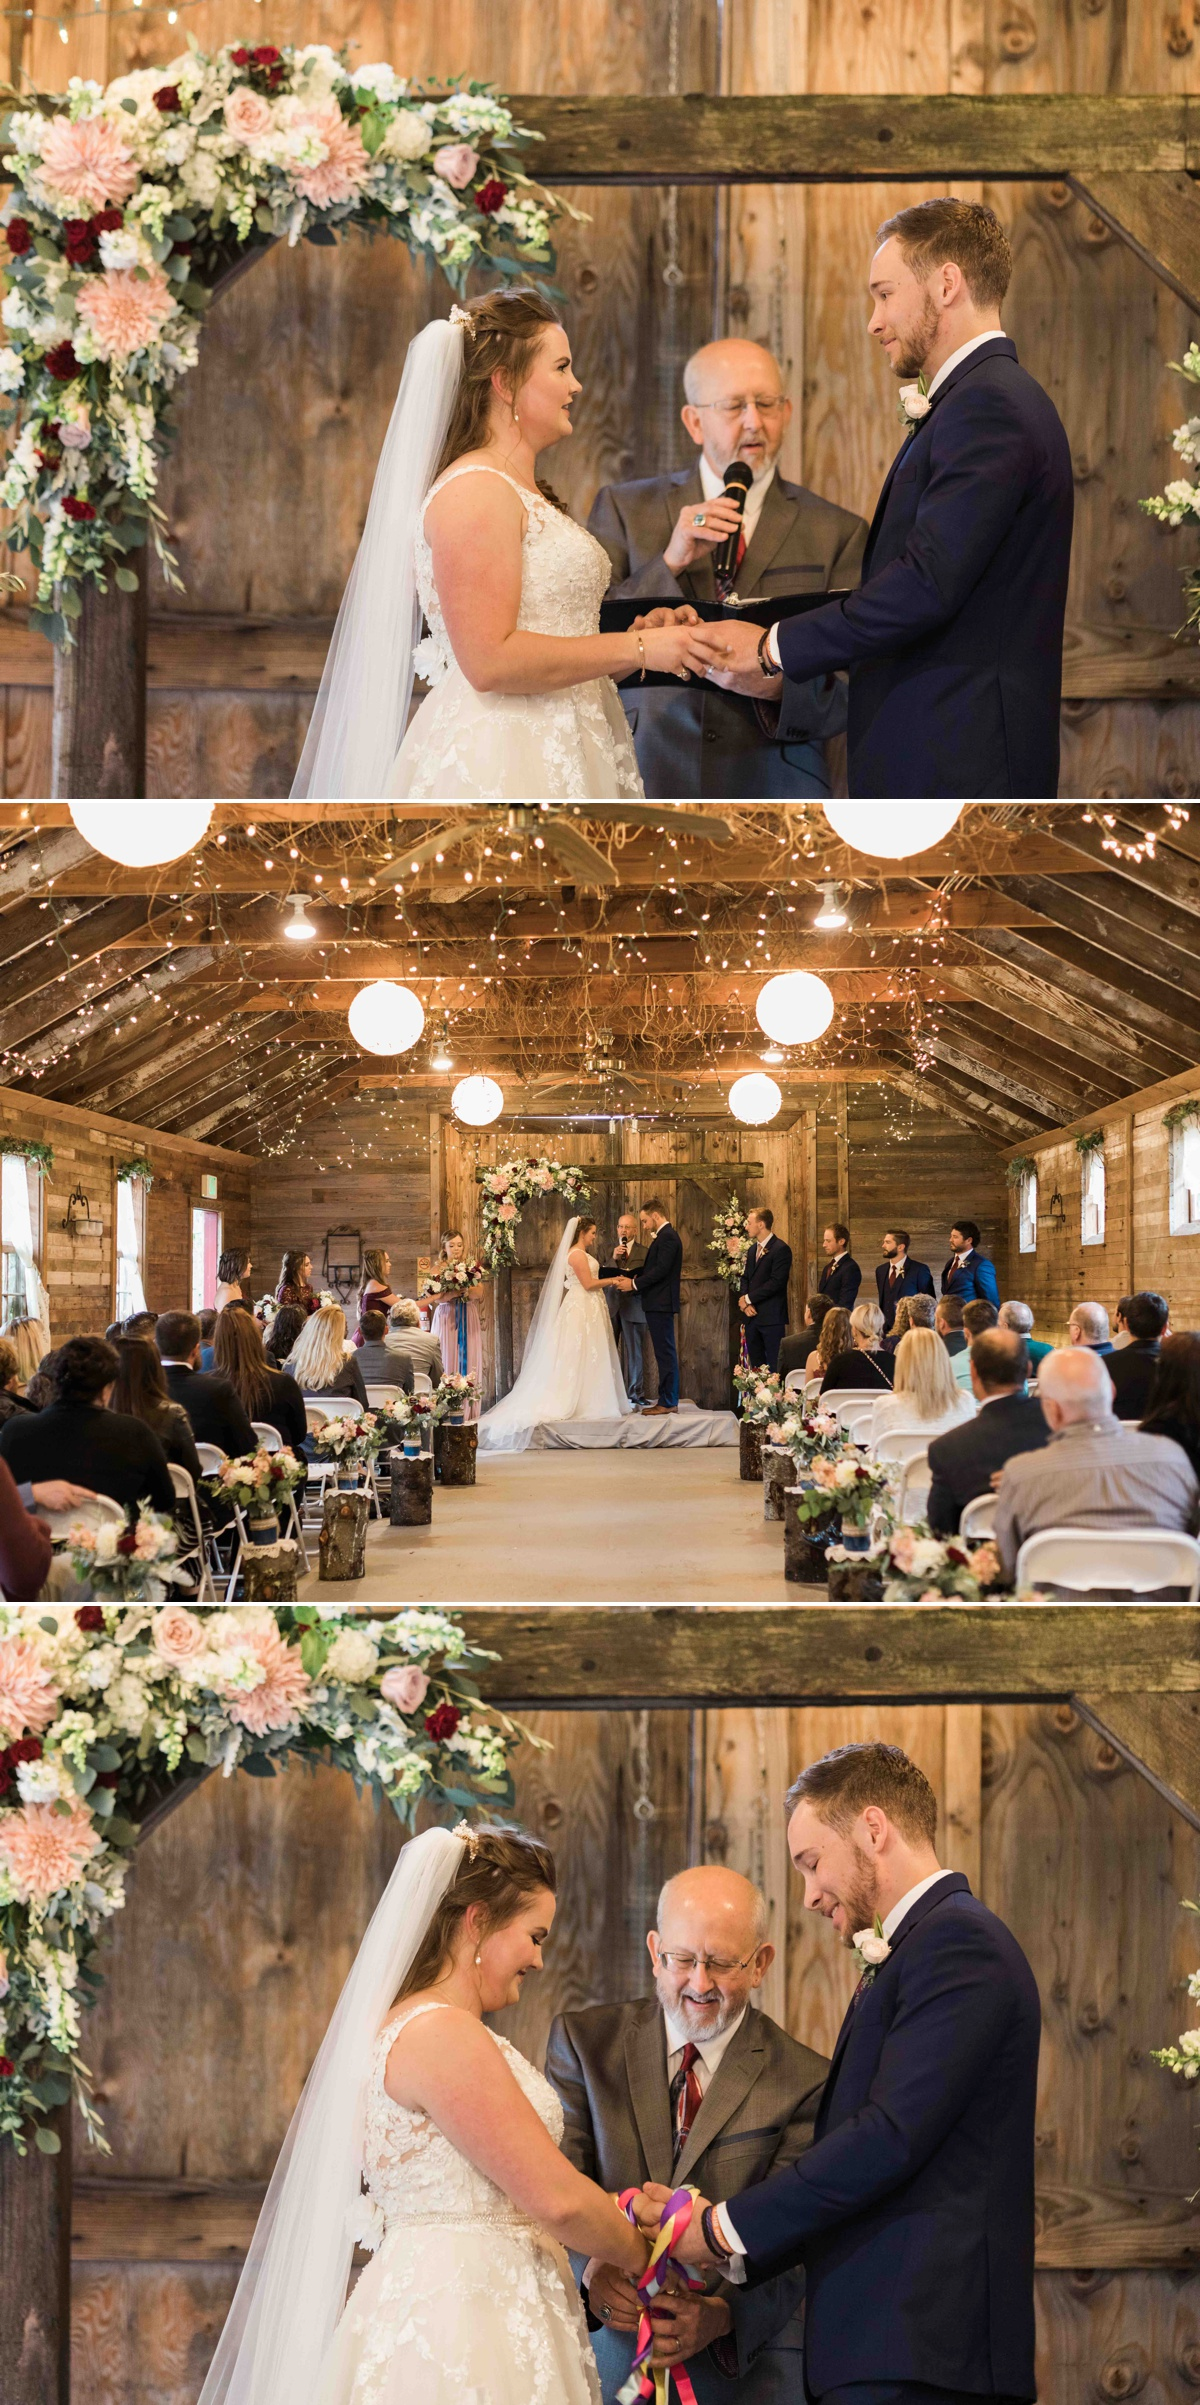 Wonderful ceremony at Craven Farms in Snohomish. Photos by Joanna Monger Photography, Snohomish and Seattle Wedding Photographer.